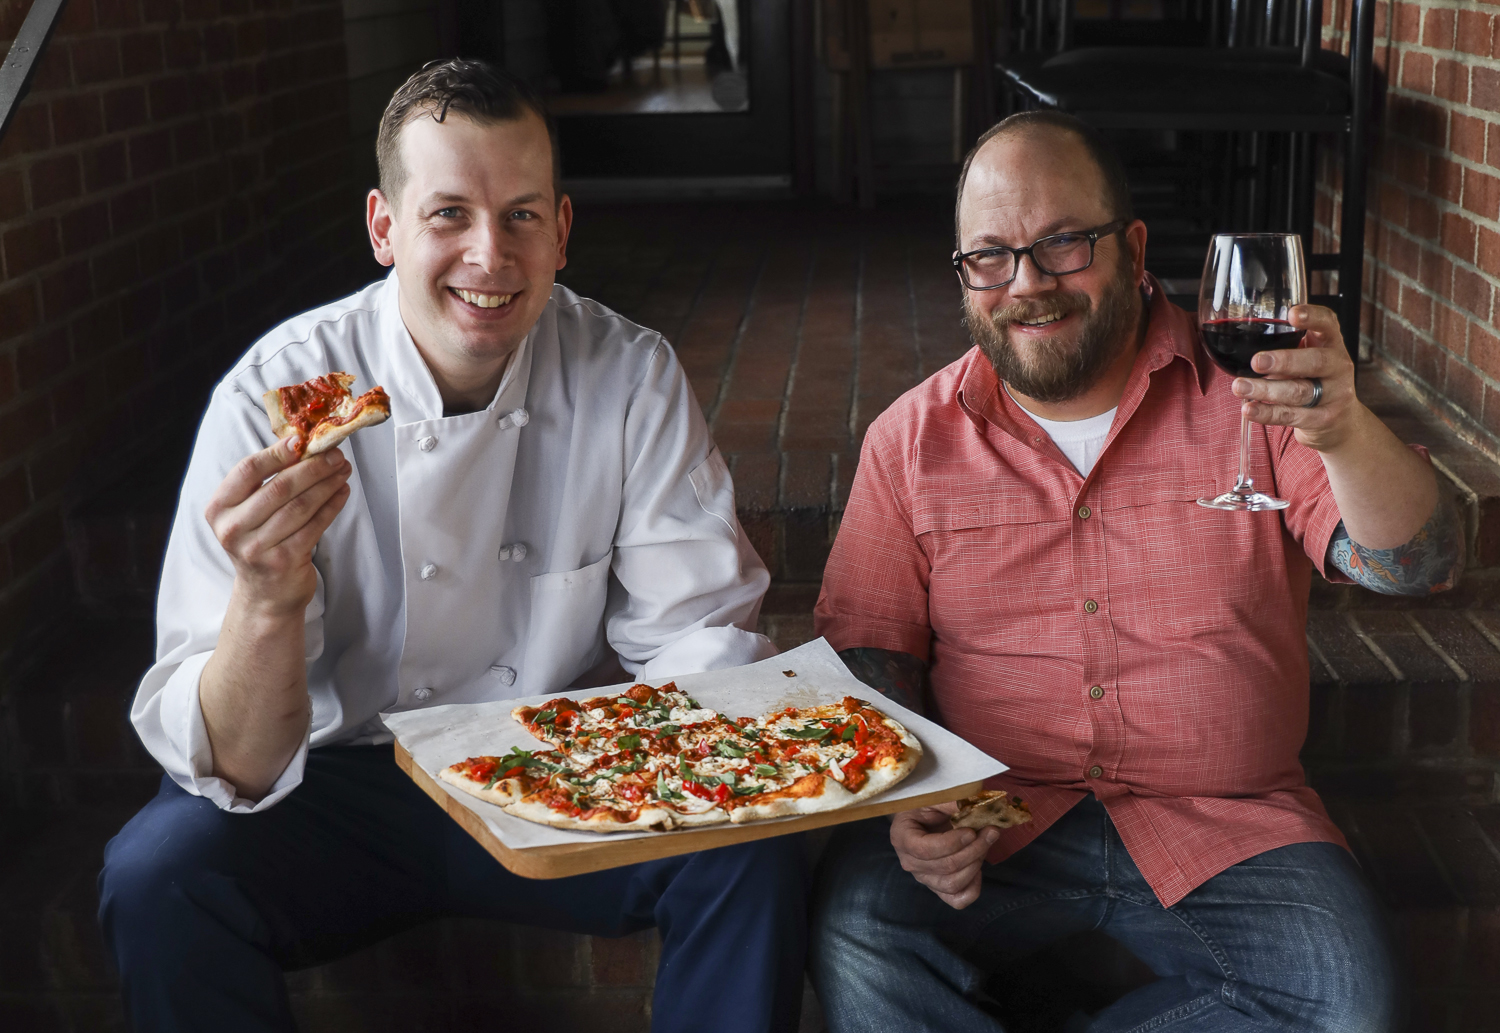 Justin Moore and Alex Manfredonia at VIN 909 in the Eastport neighborhood.